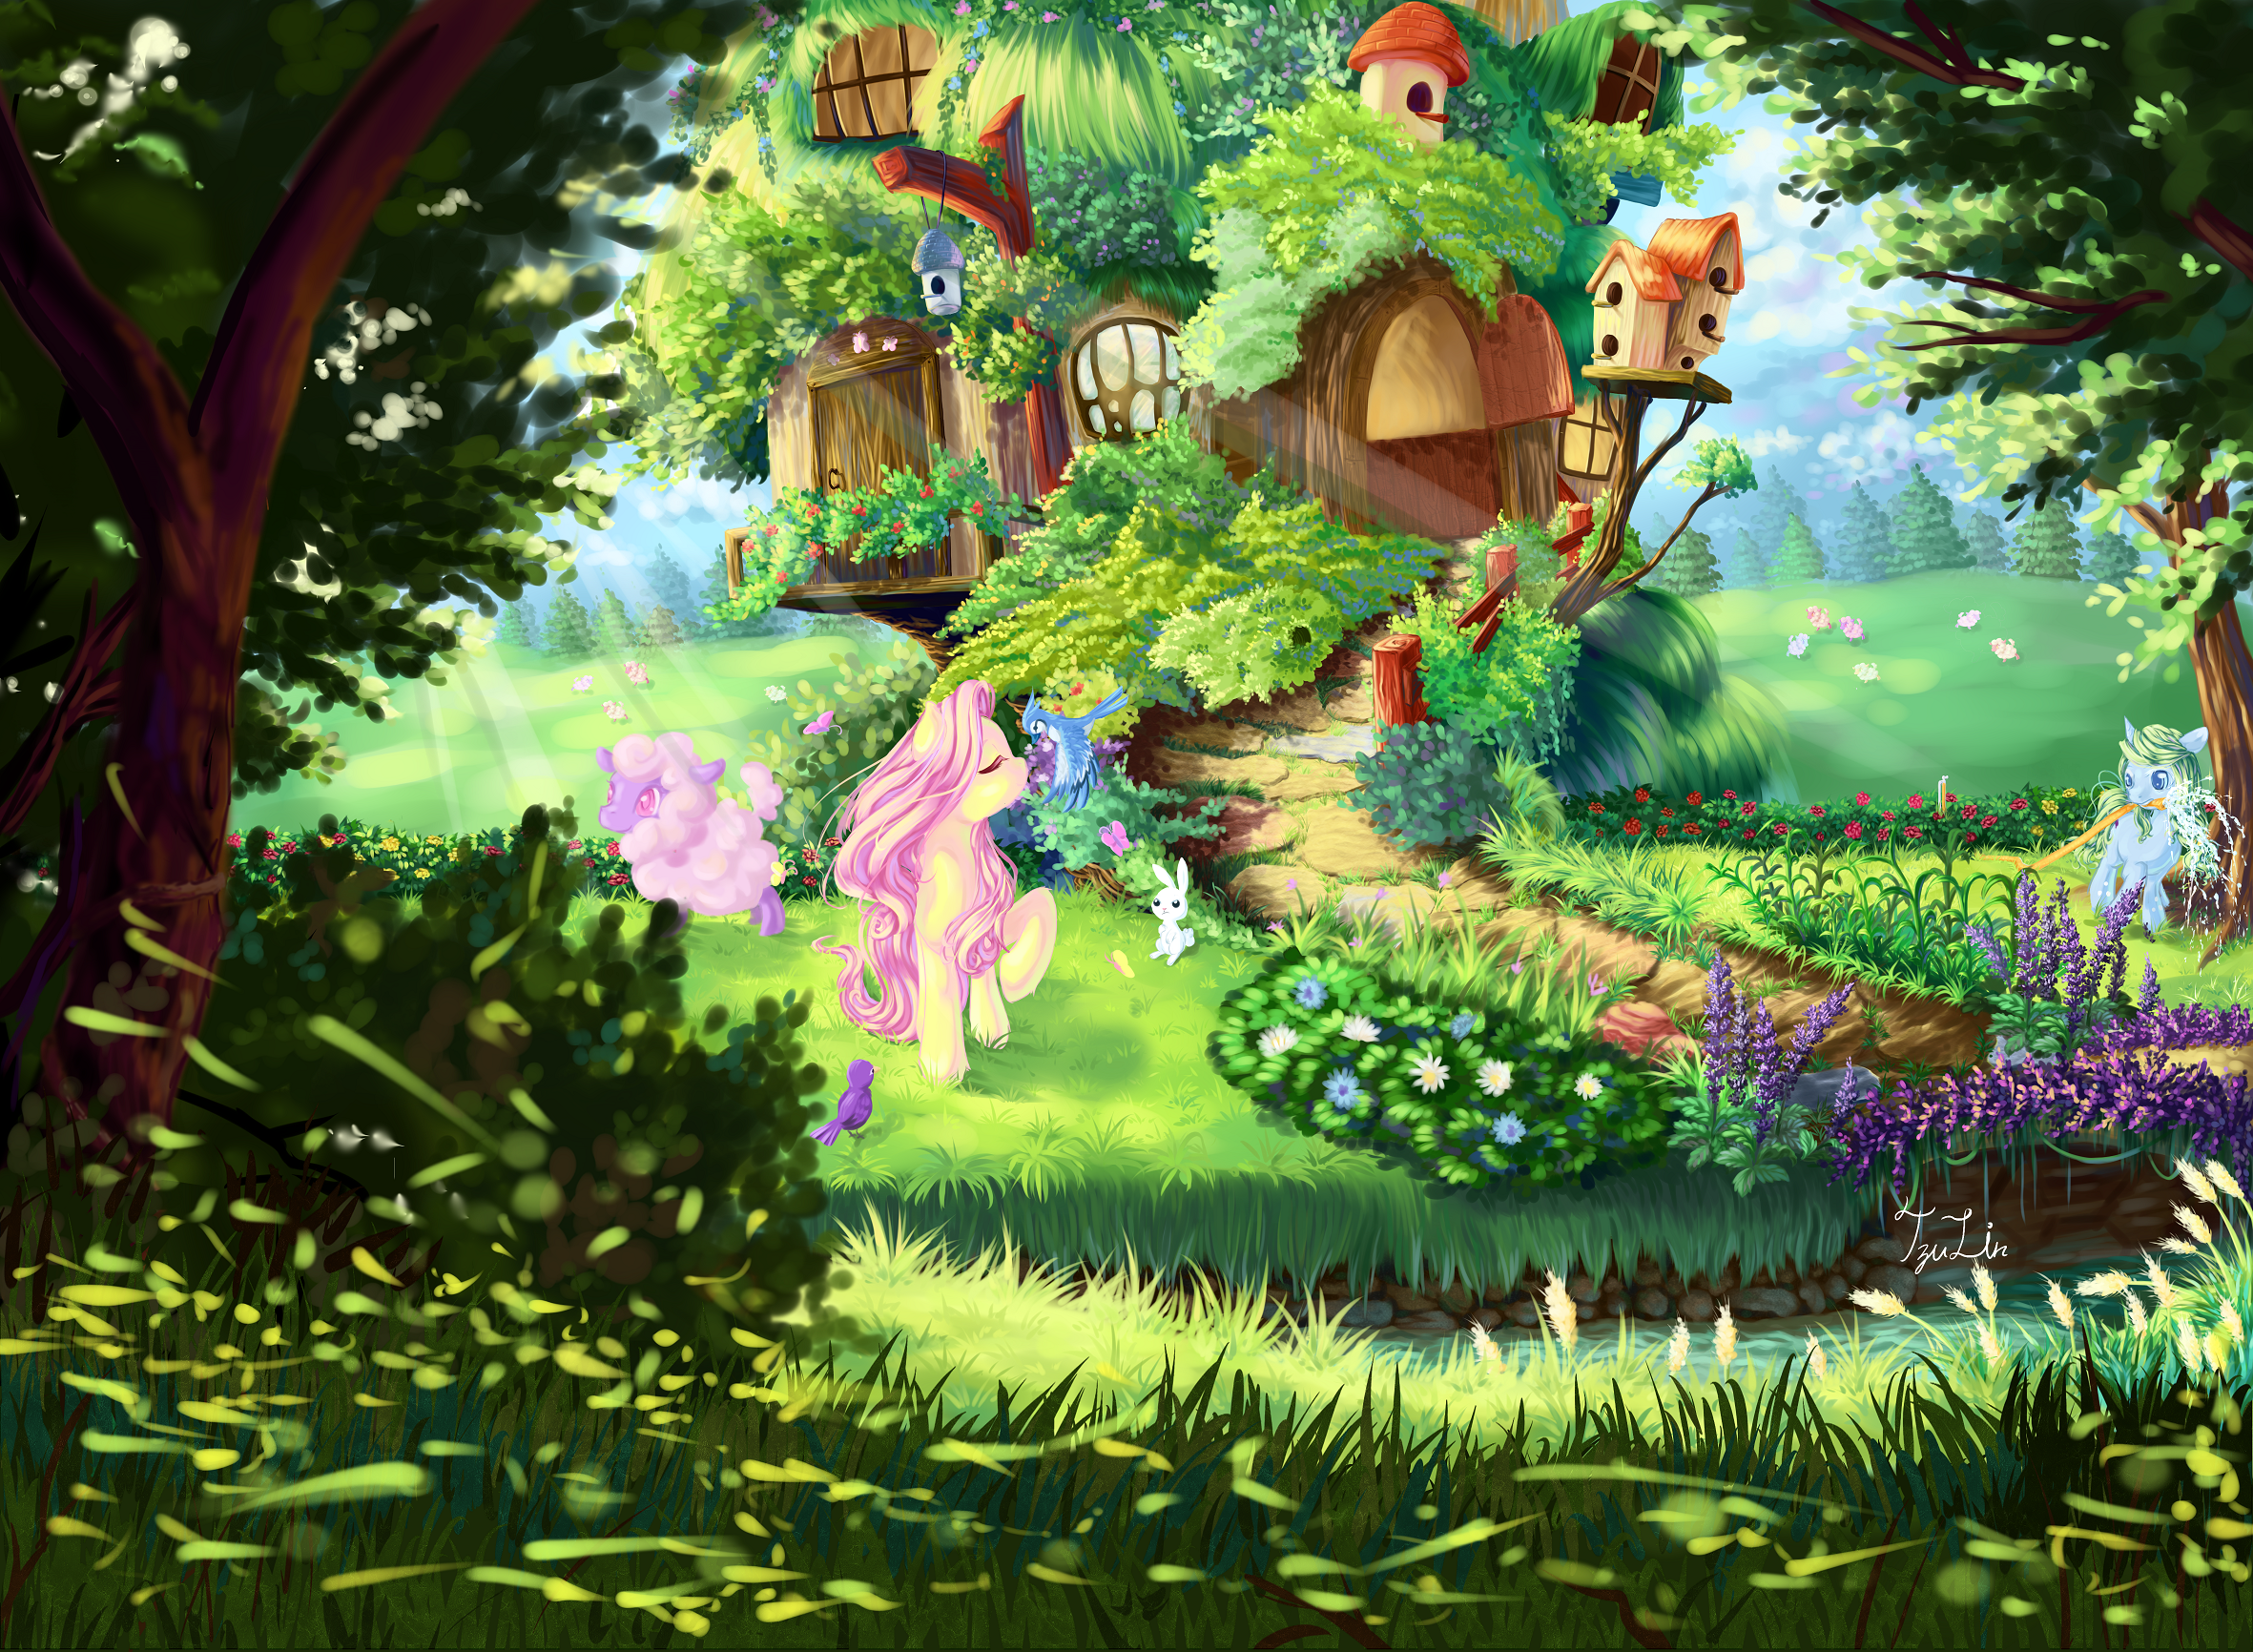 e621 amazing_background ambiguous_gender blue_eyes blue_feathers blue_fur bridge building creek detailed_background earth_pony equine eyes_closed fan_character feathered_wings feathers female feral flower fluttershy_(mlp) friendship_is_magic fur garden green_hair group hair hi_res horse house mammal my_little_pony nature outside pink_hair plant pony tree_house water window wings yellow_fur 卒凜